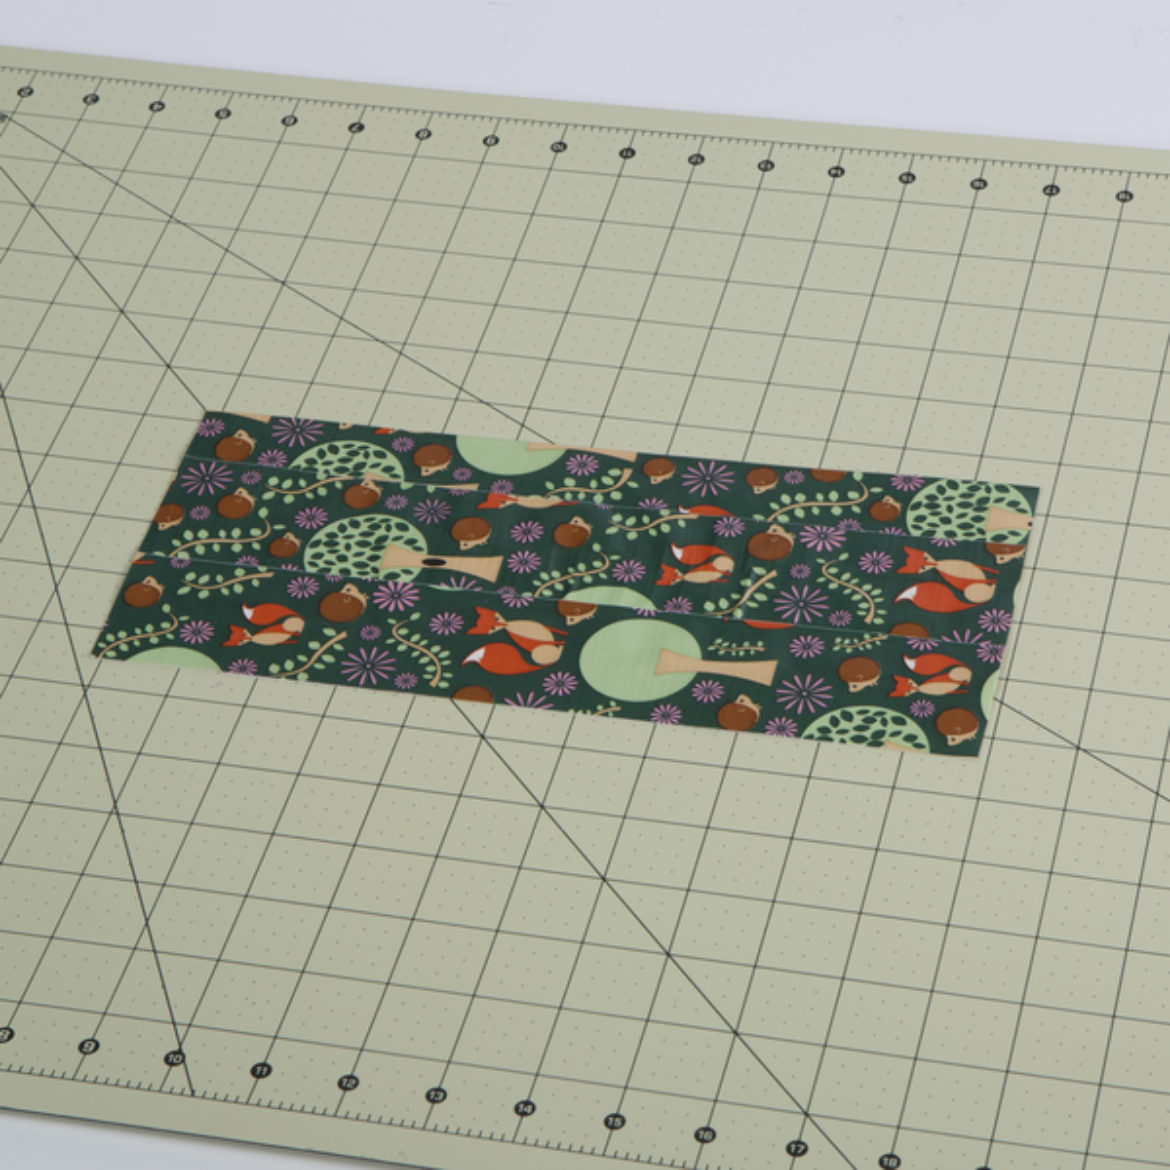 Duck Tape fabric piece to serve as a pocket